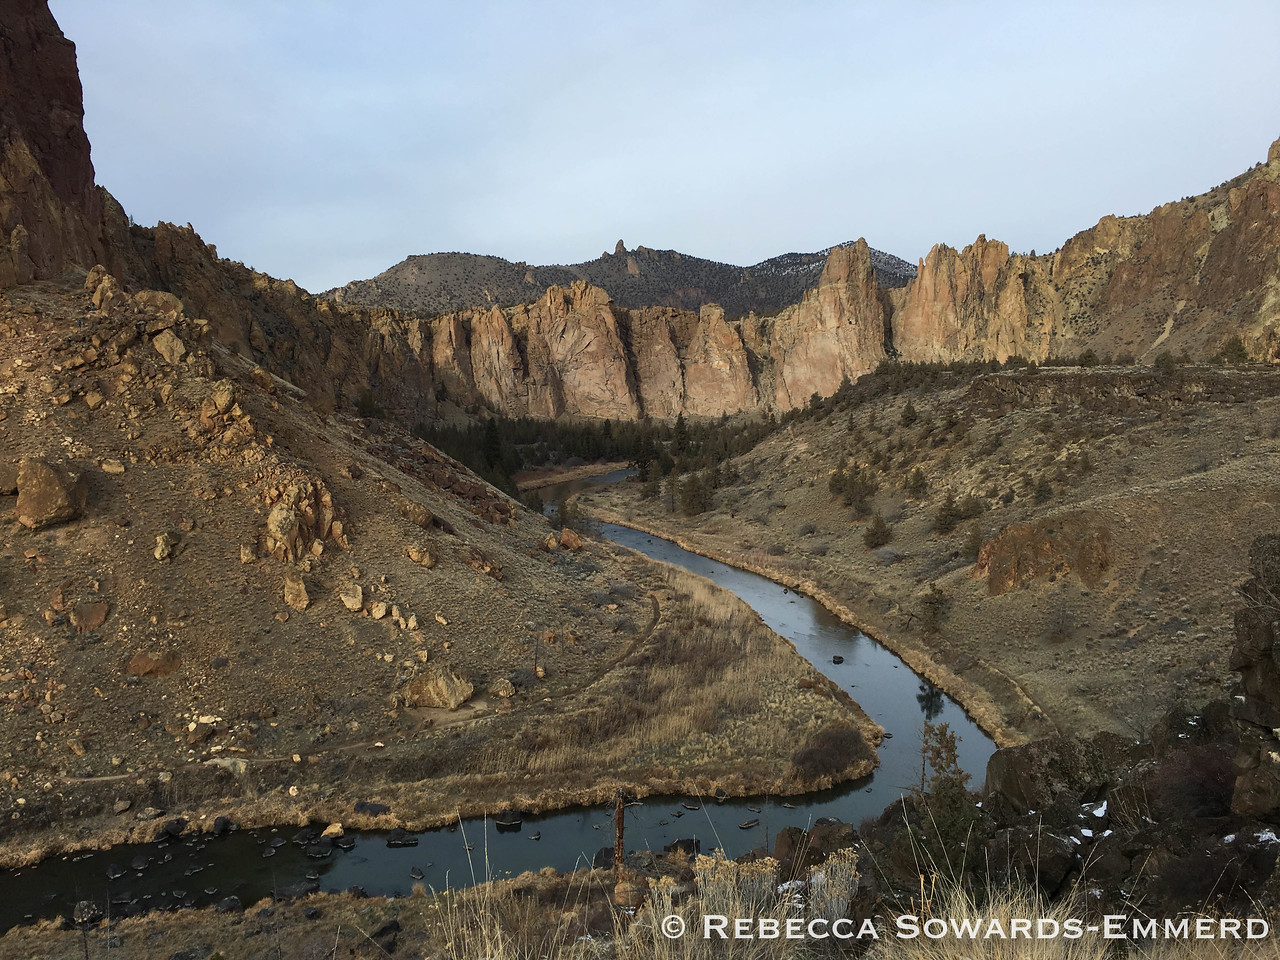 The next day we went hiking at Smith Rock.